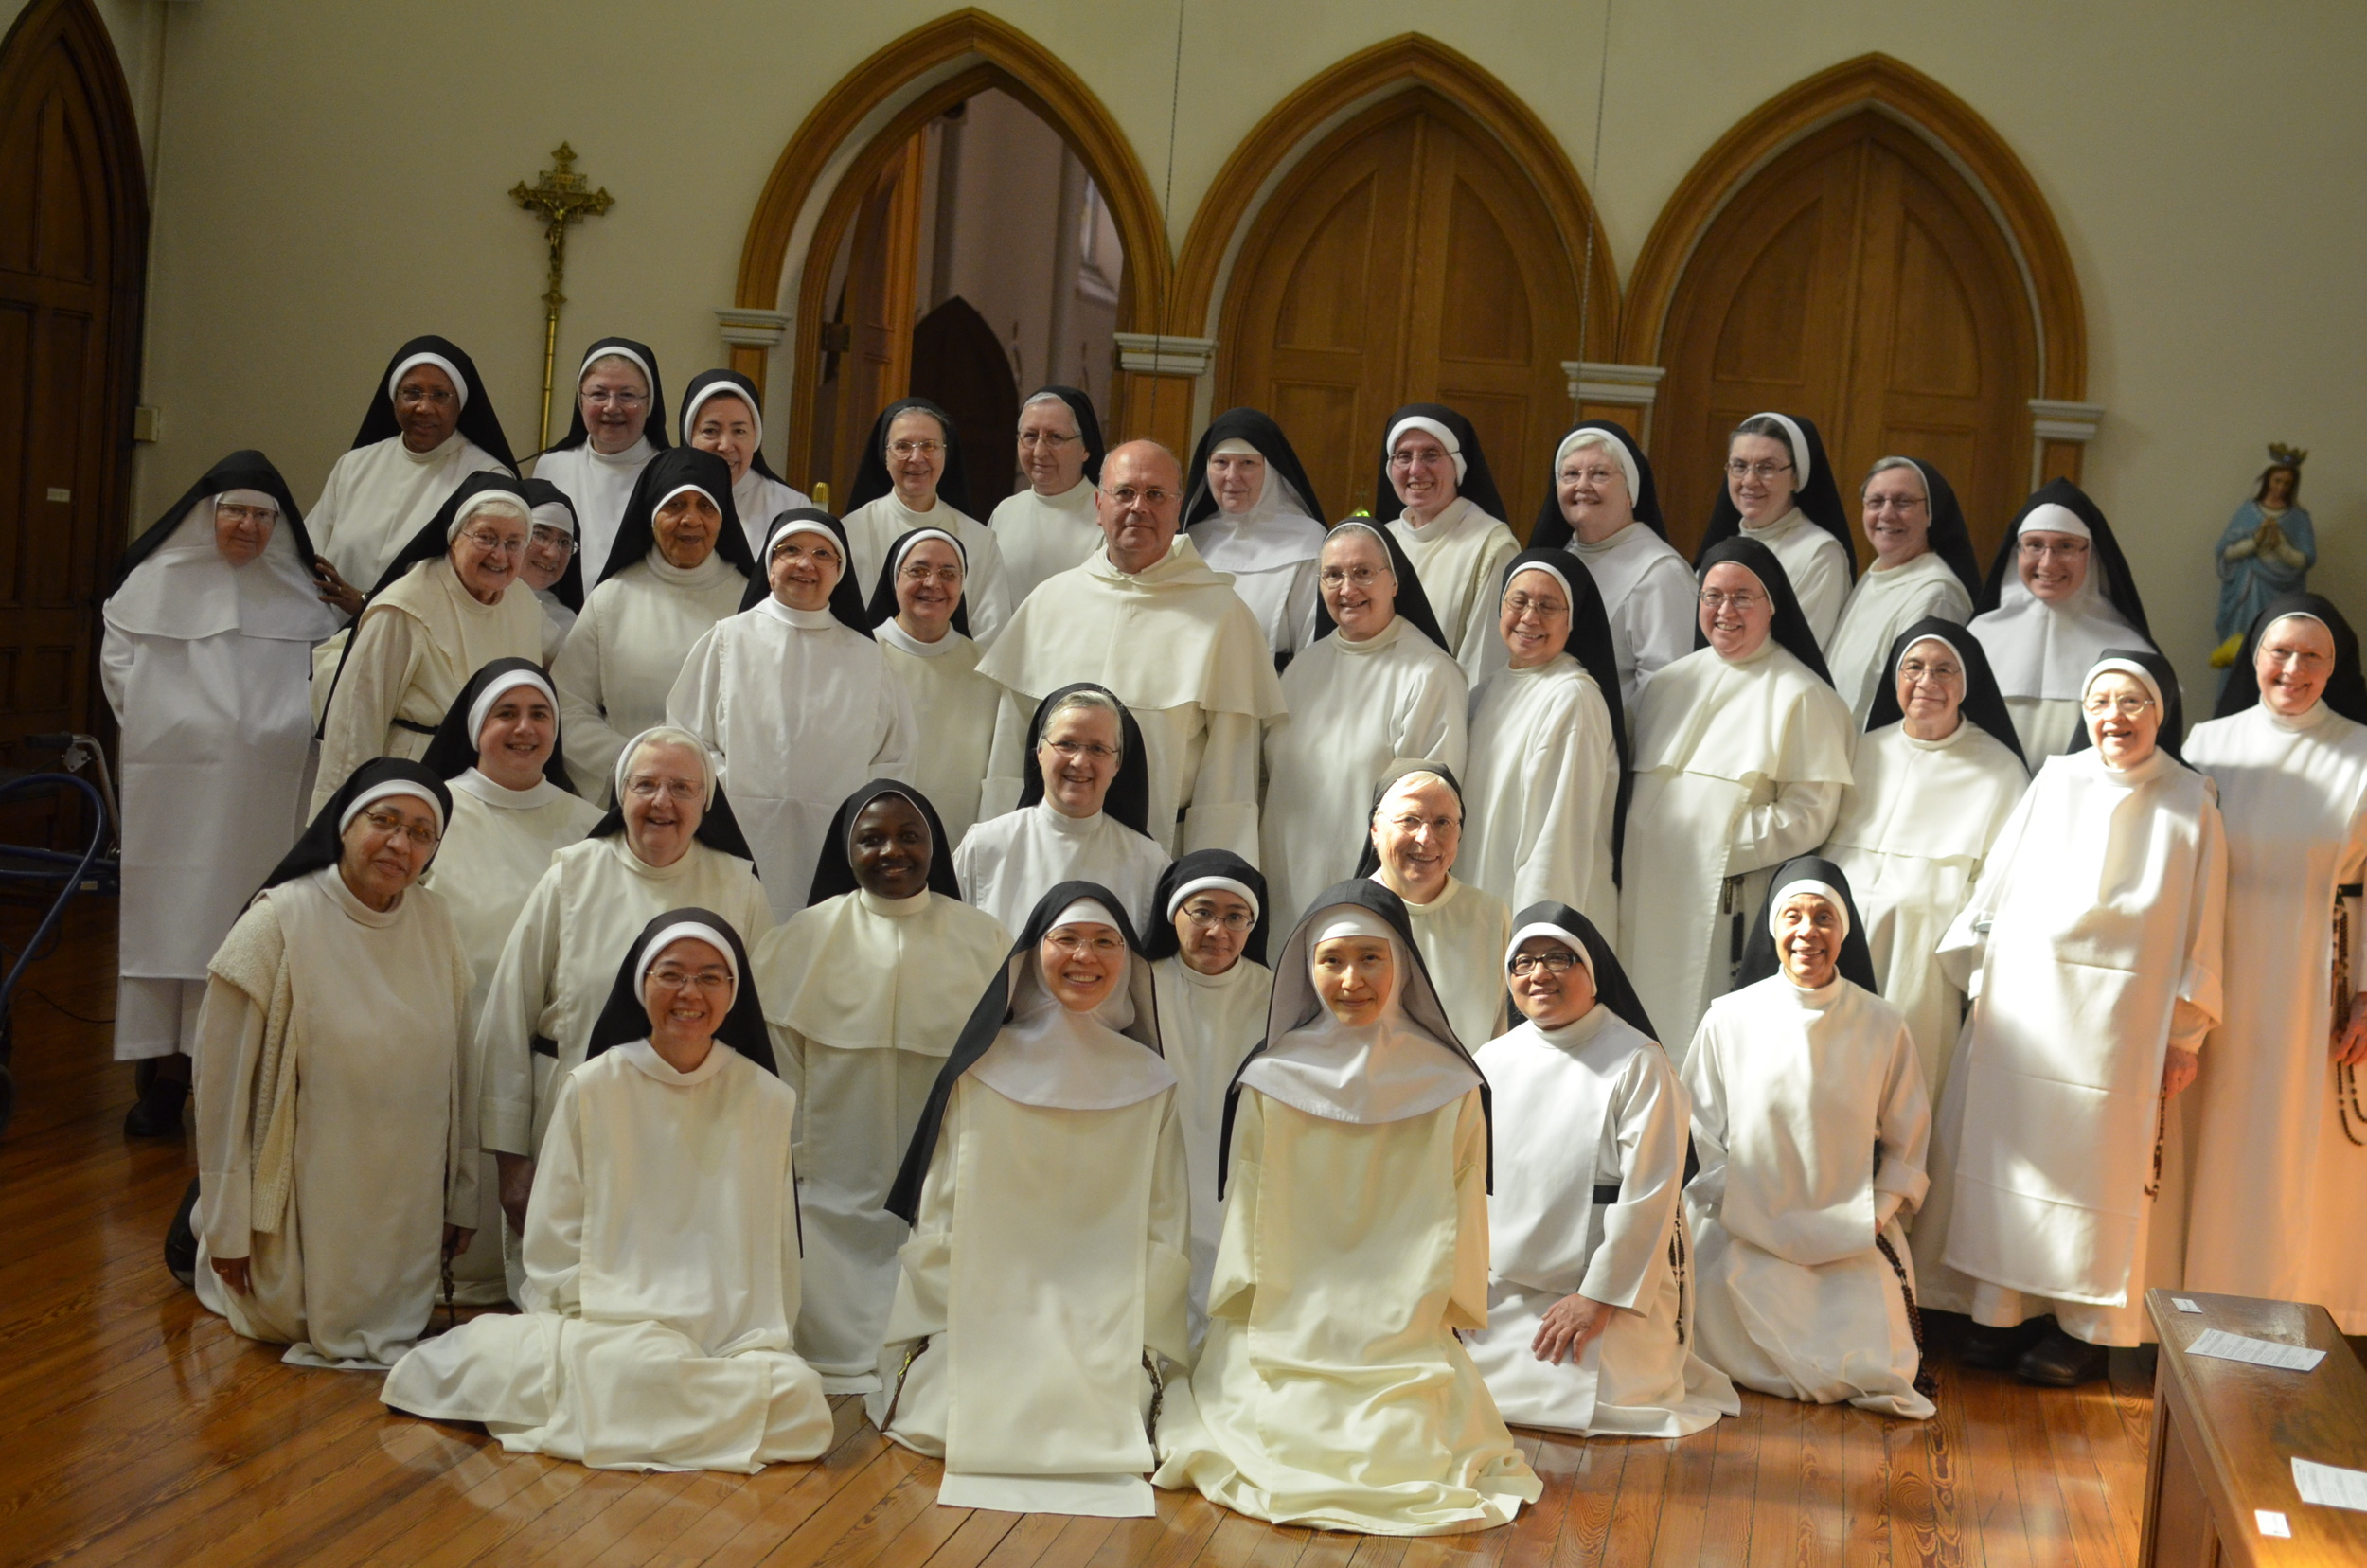 The representatives of the monasteries of the Association of Dominican Nuns of North America with our brother, Padre. Caesar Velero Bajo, OP